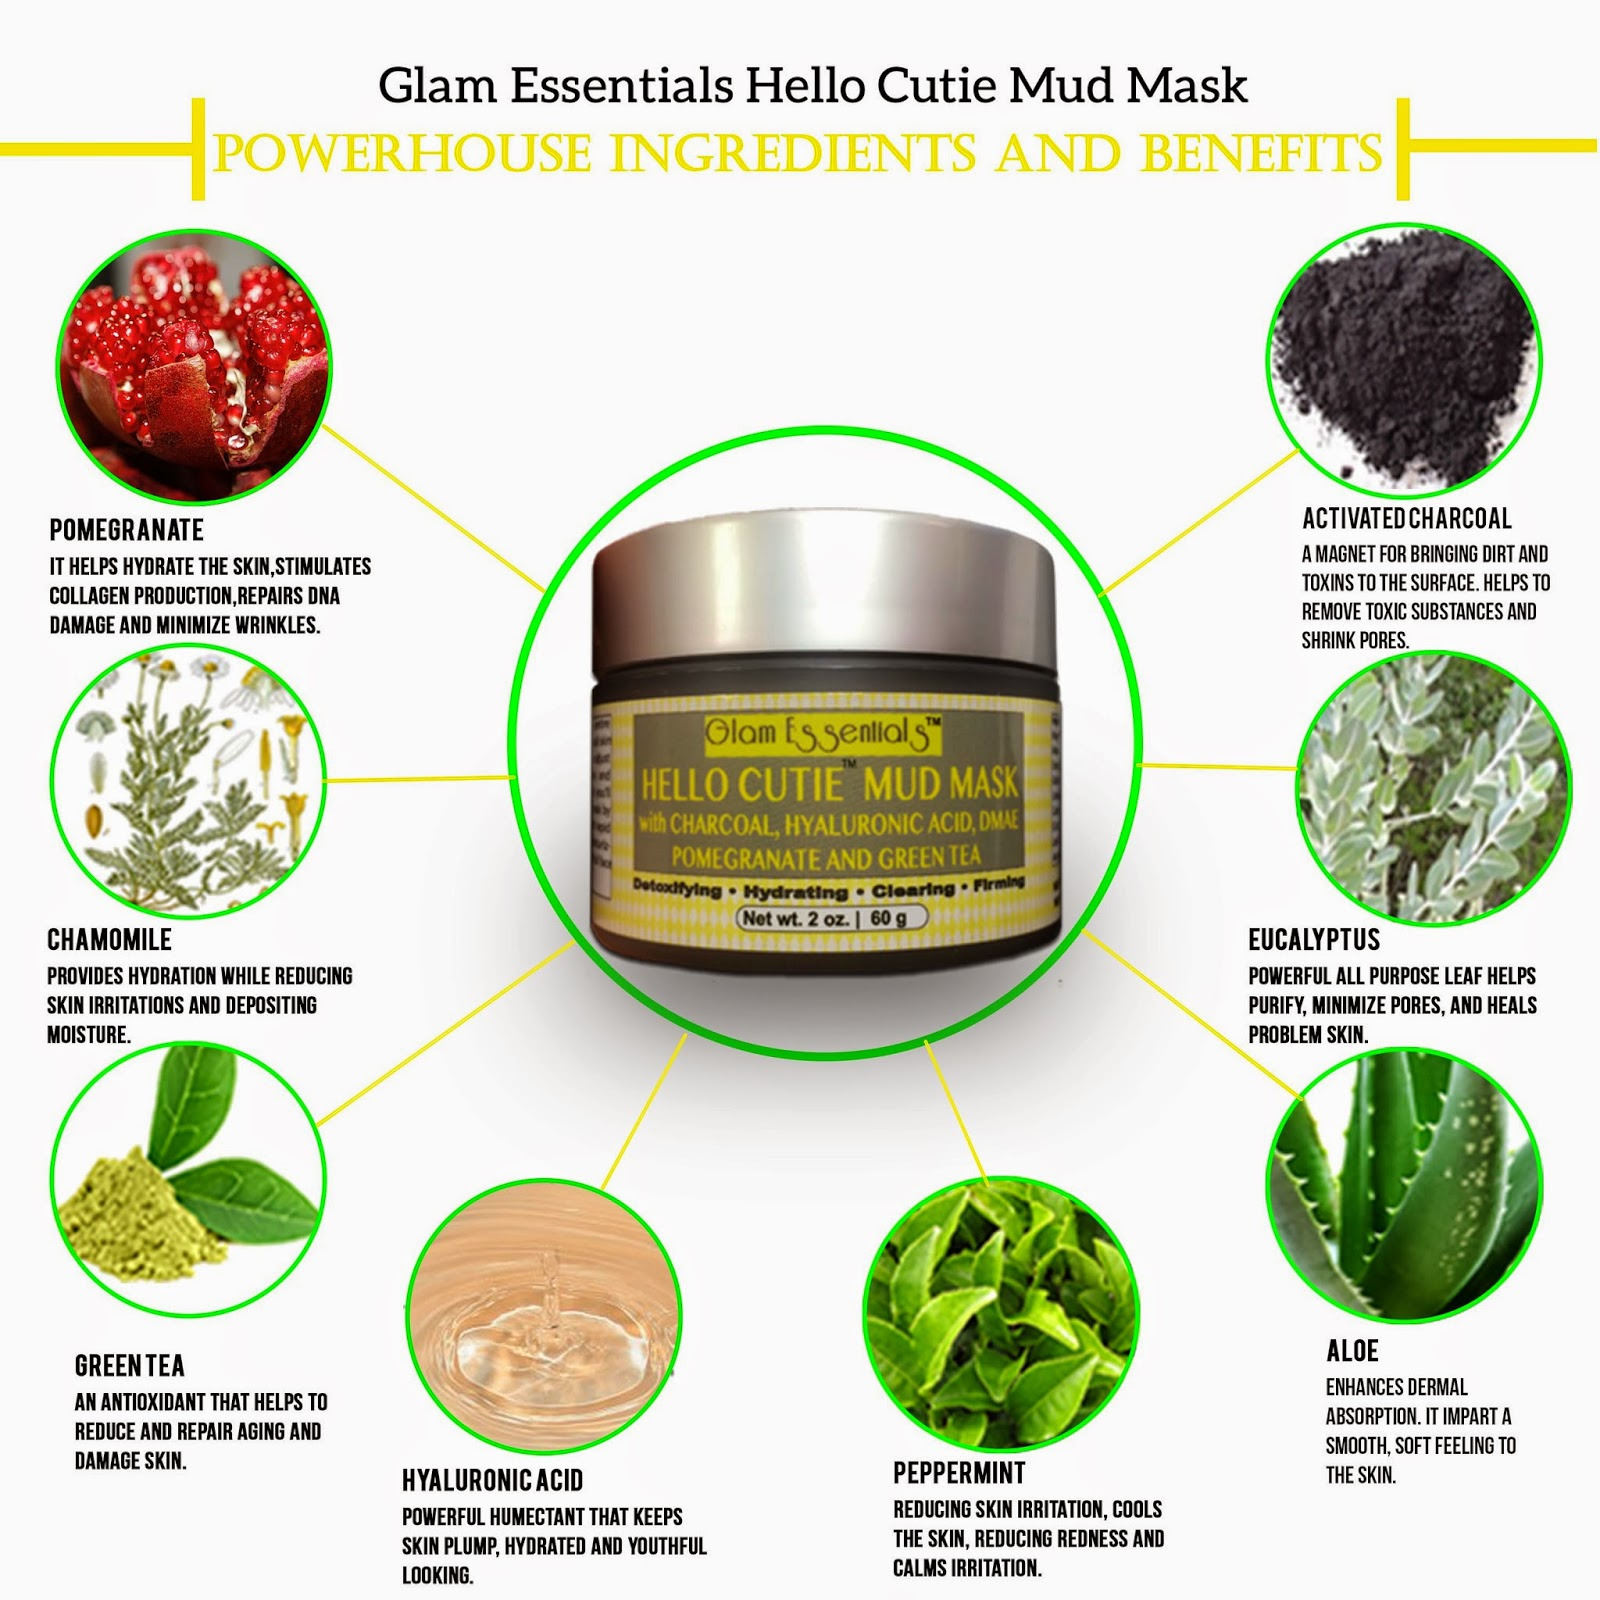 Glam Essentials Hello Cuite Mud Mask